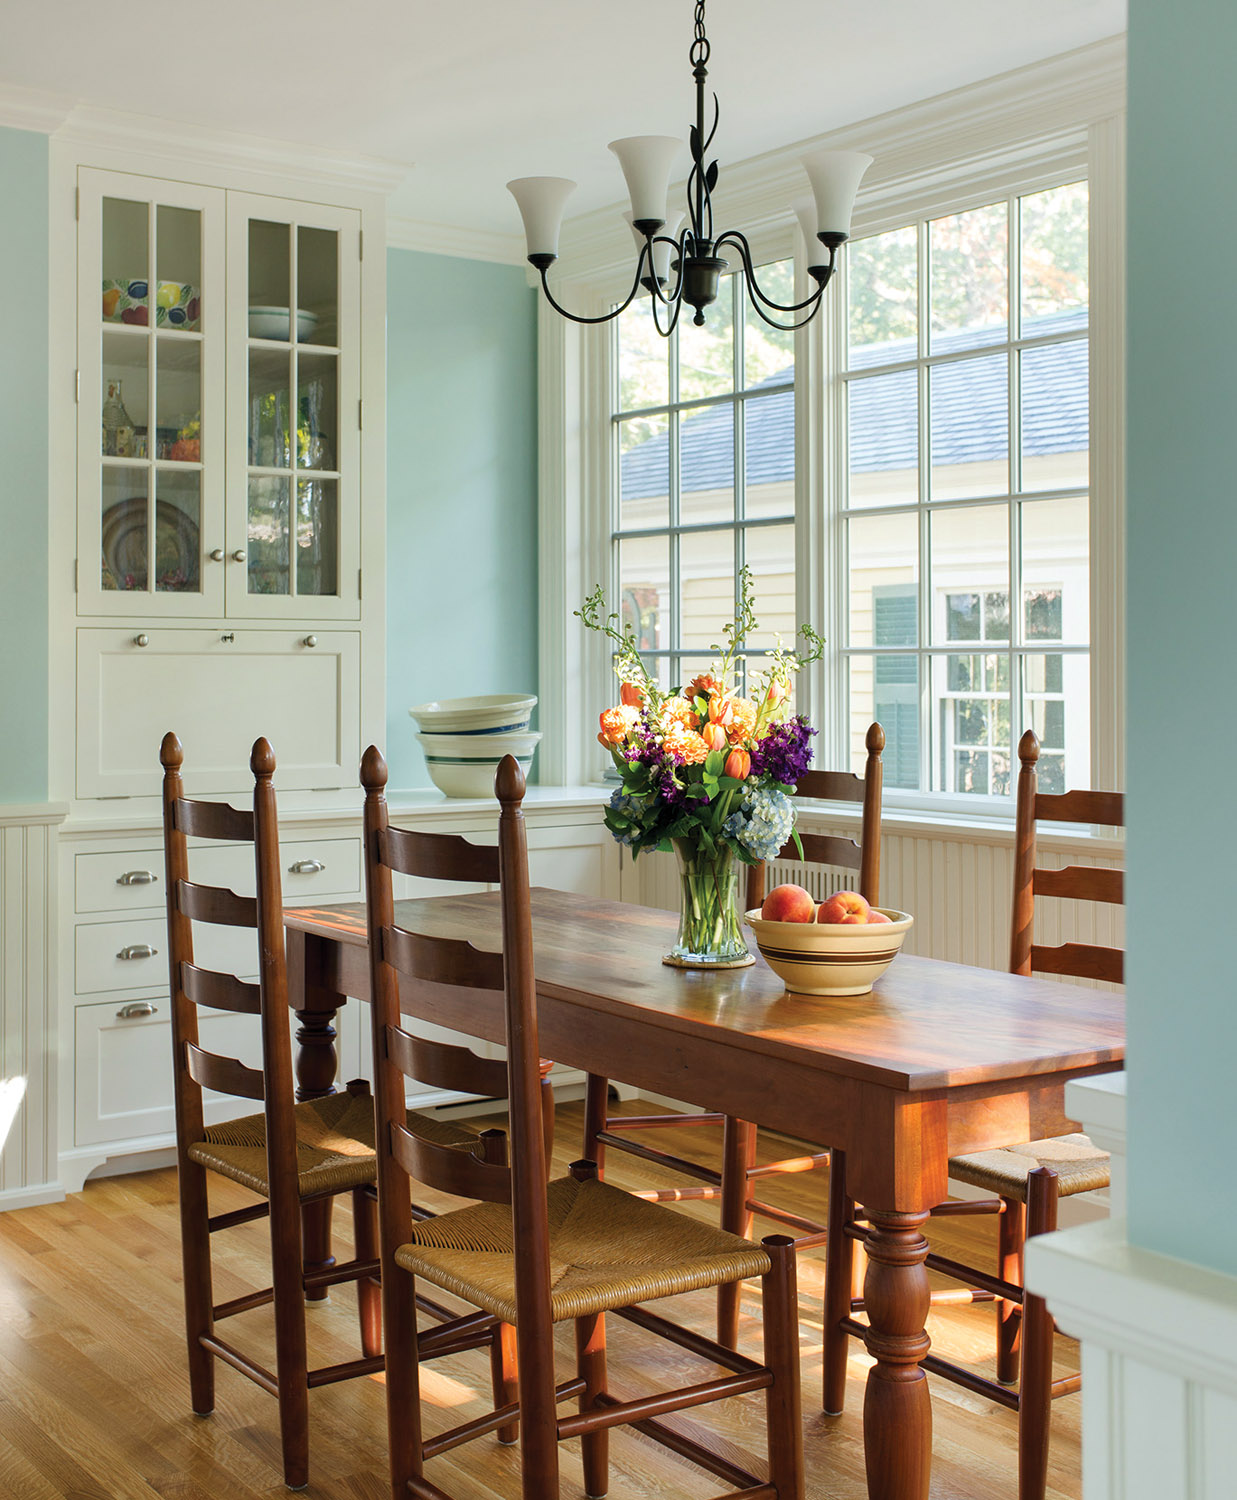 Winchester dining cupboard, Kennebec